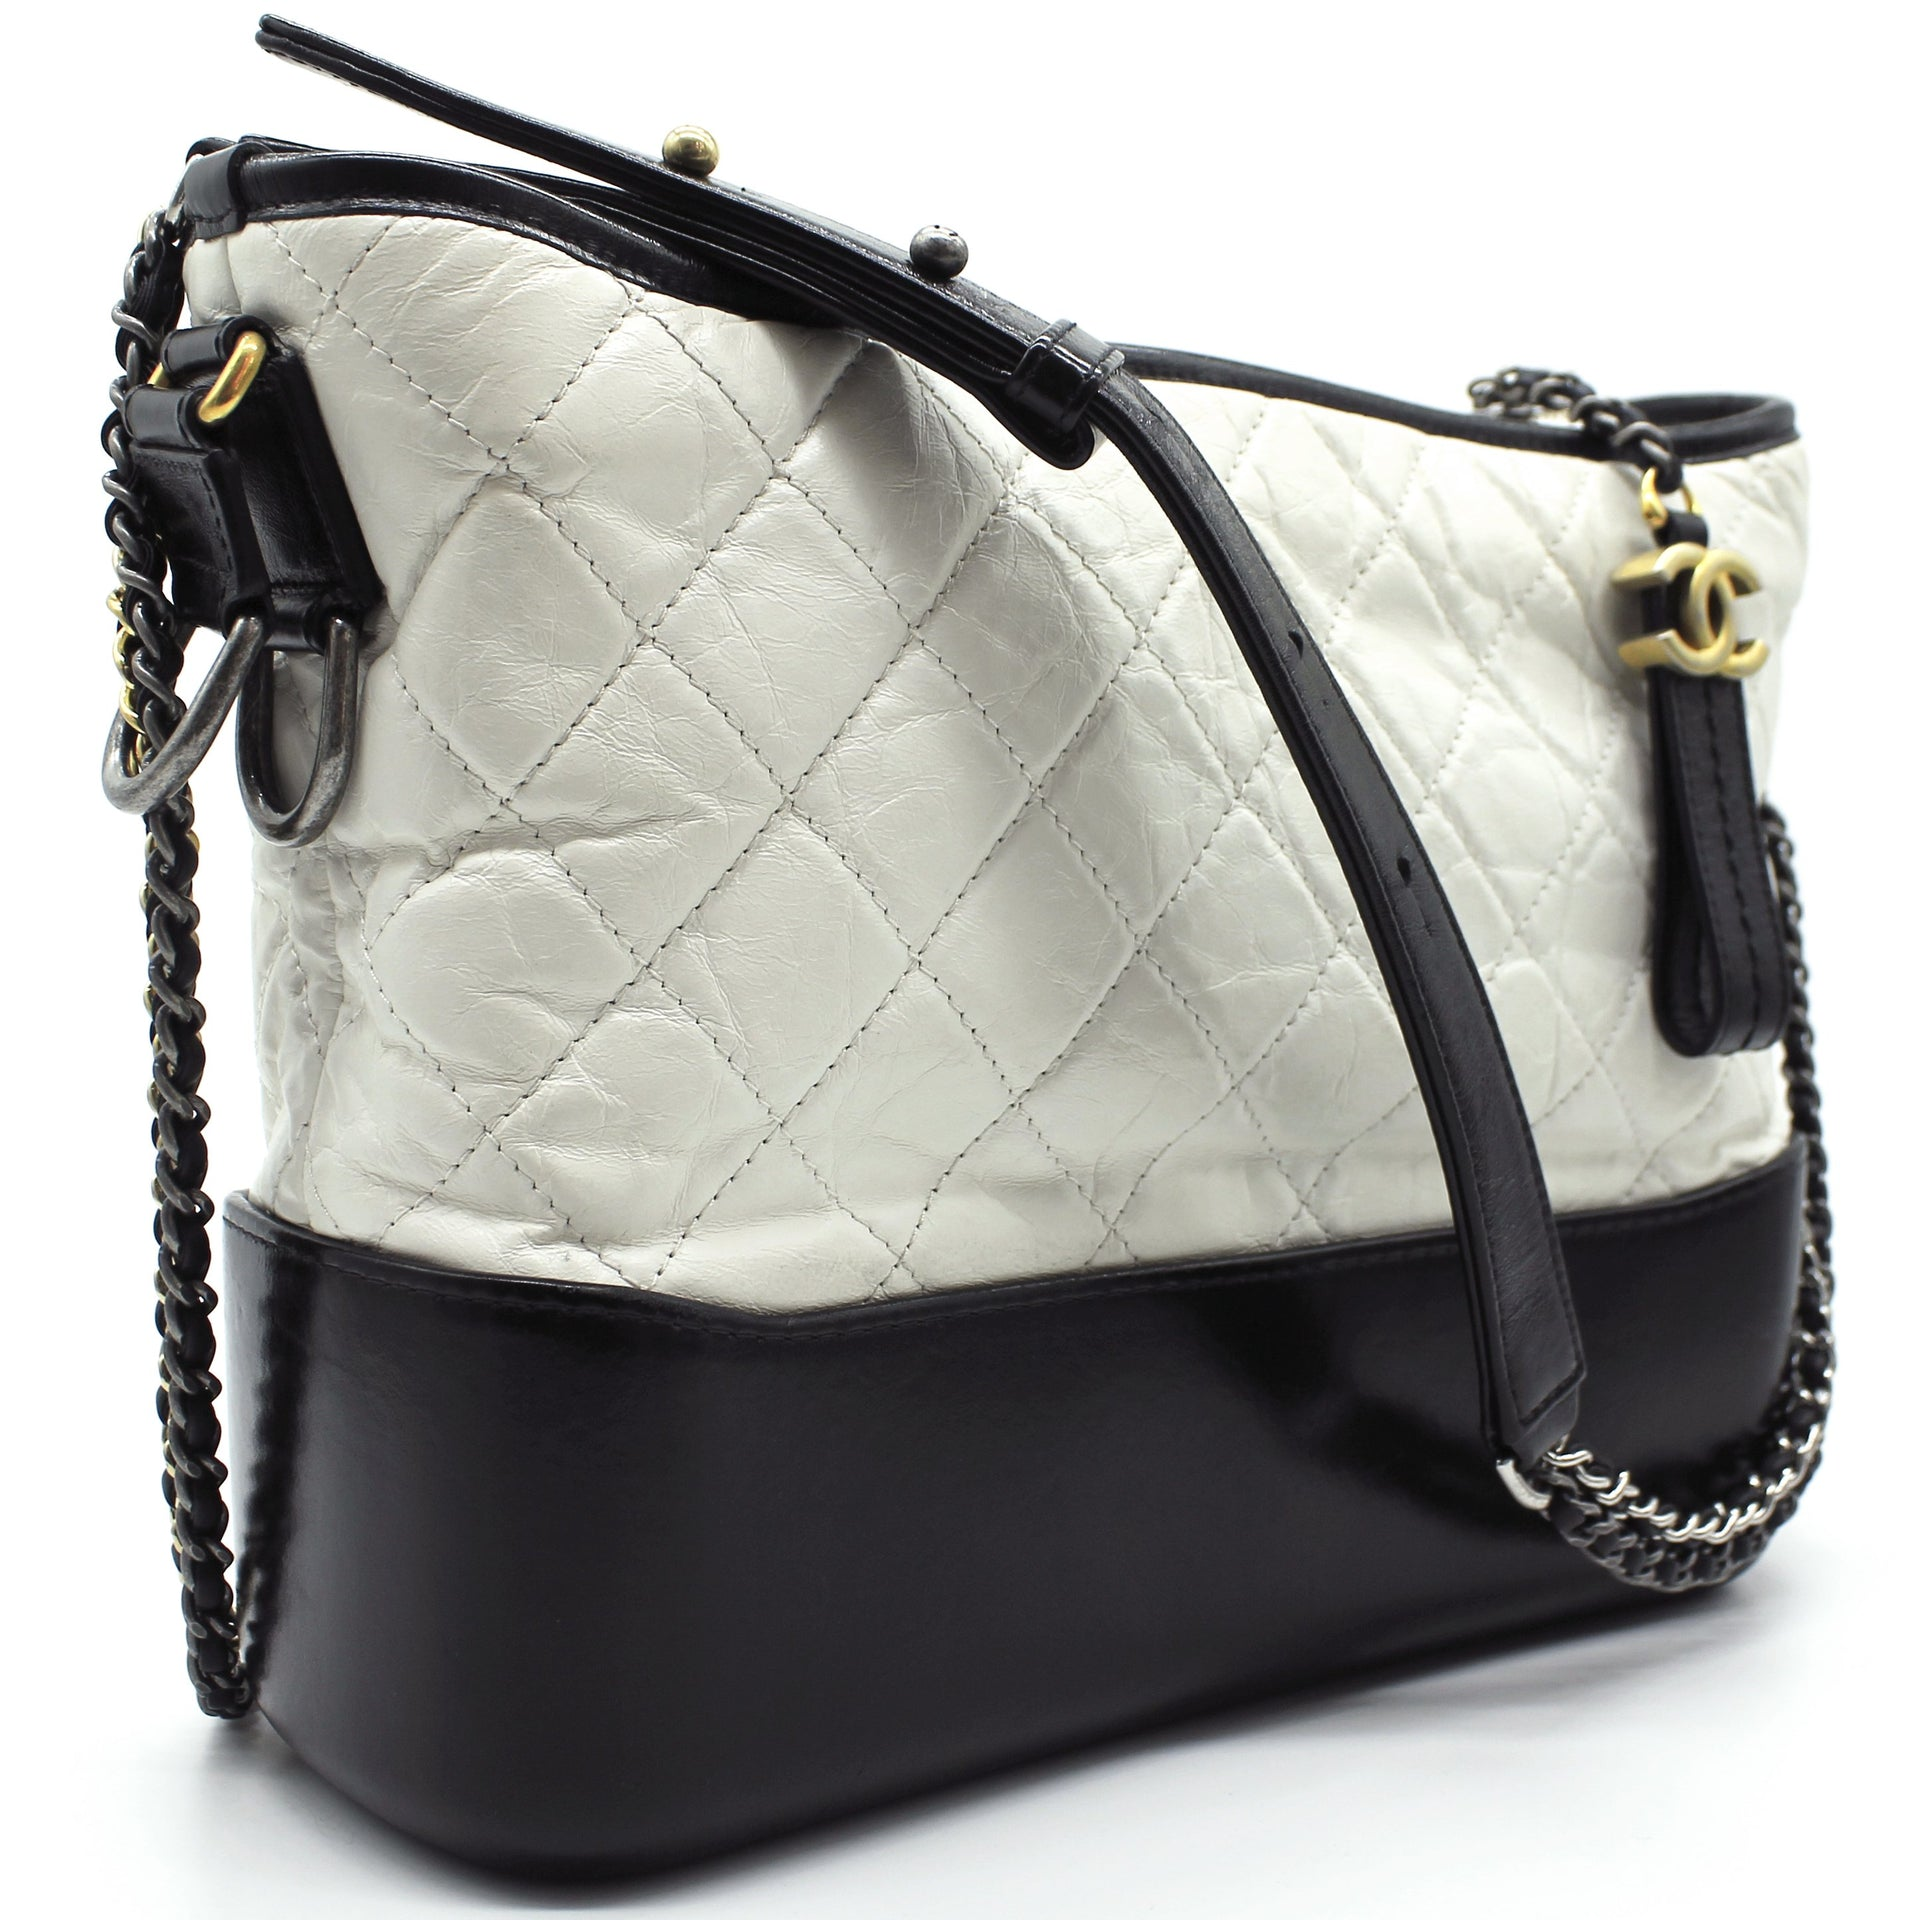 Chanel Calfskin Quilted Medium Gabrielle Hobo Black White